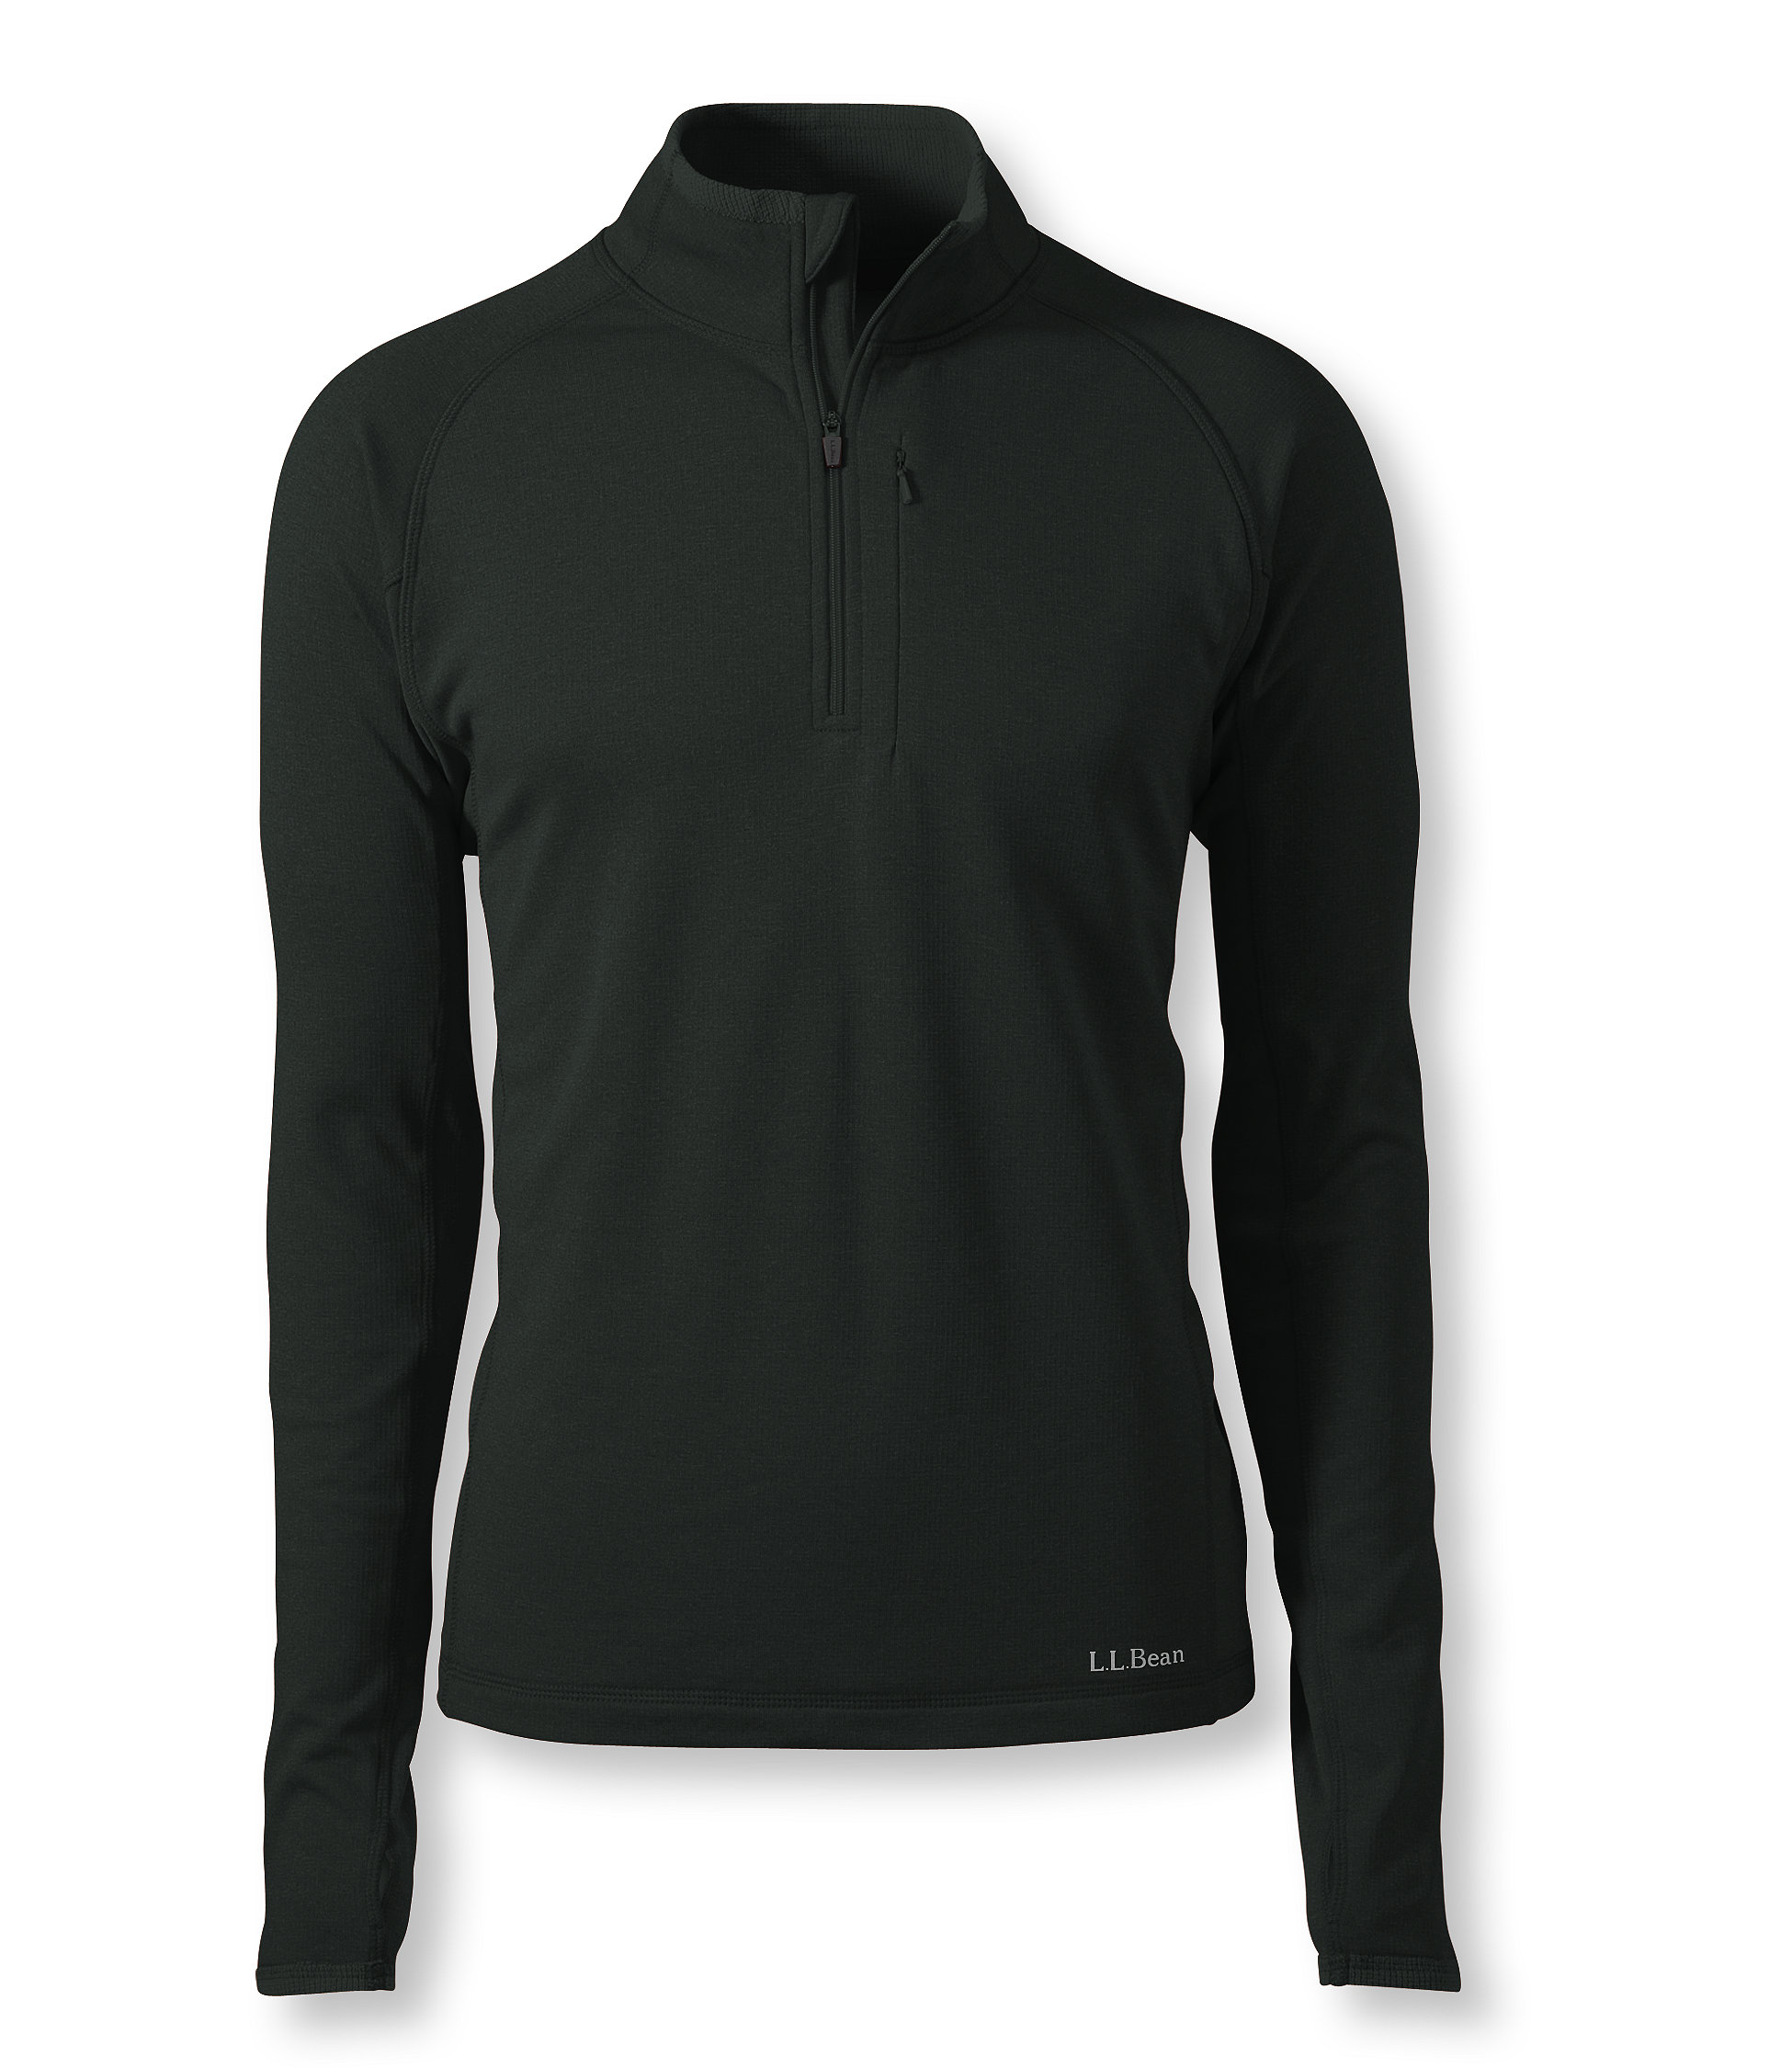 L.L.Bean Polartec Power Dry Base Layer, Quarter-Zip Expedition Weight